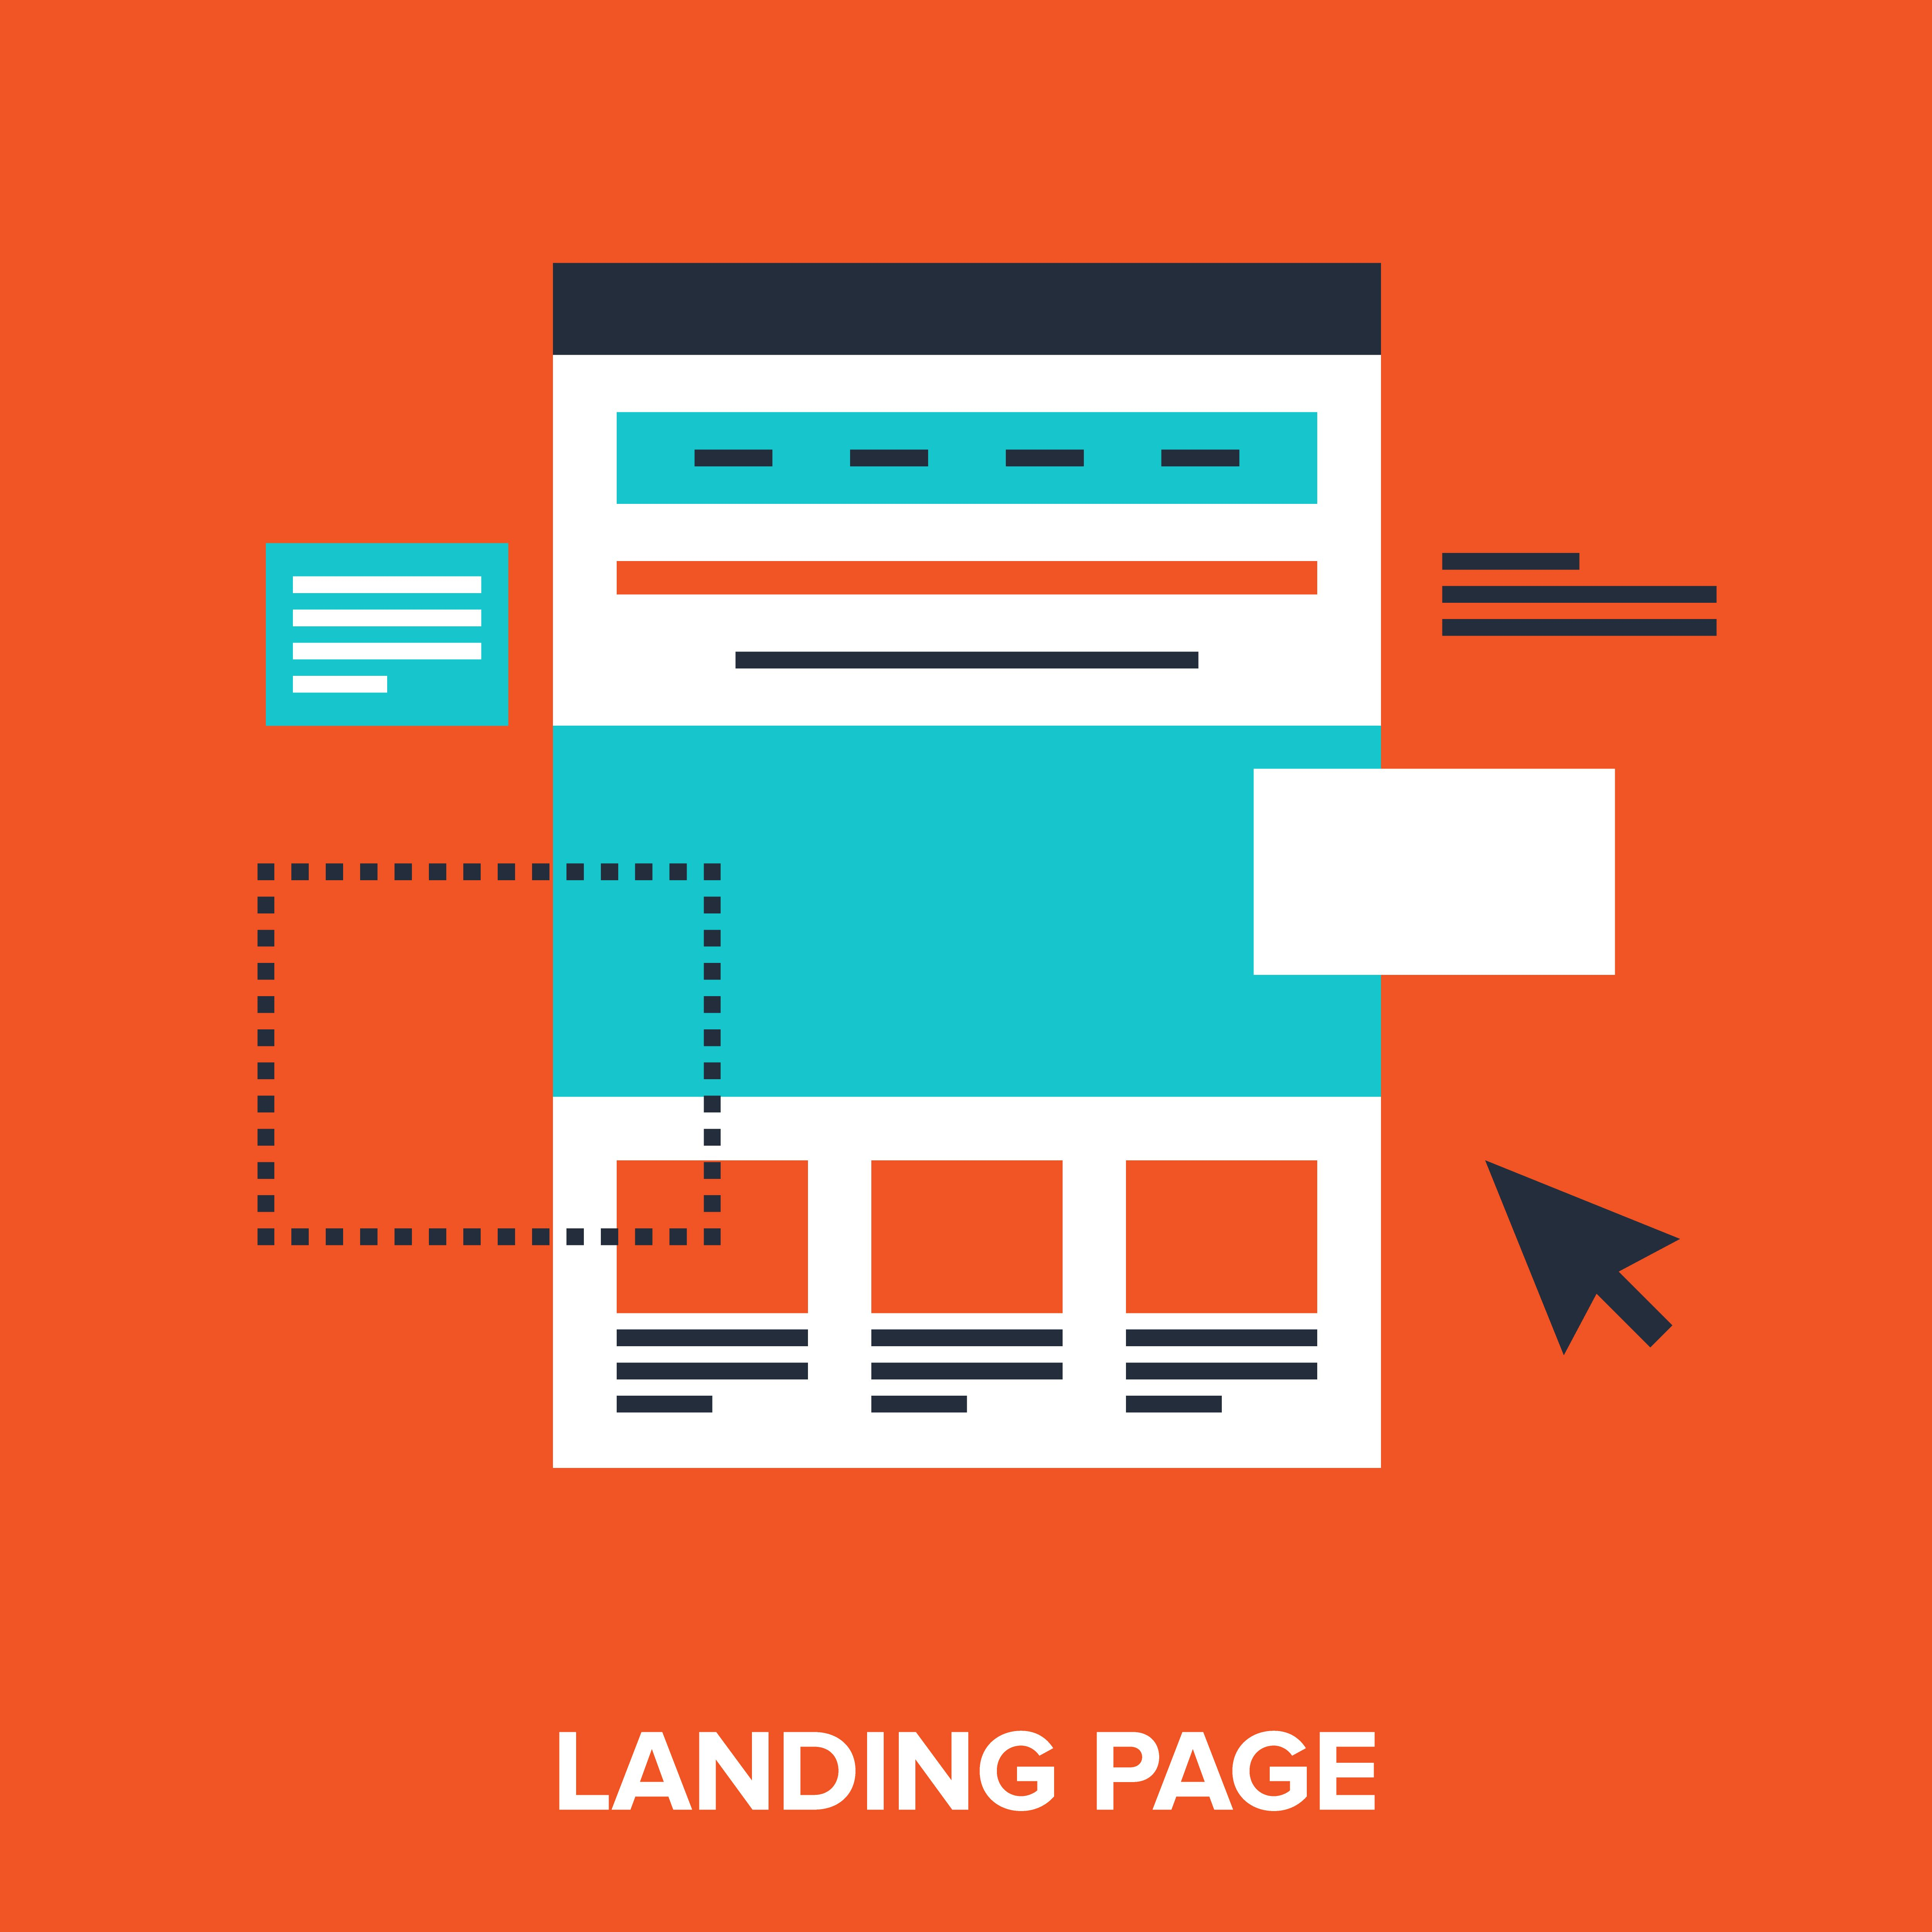 B2B landing page best practices